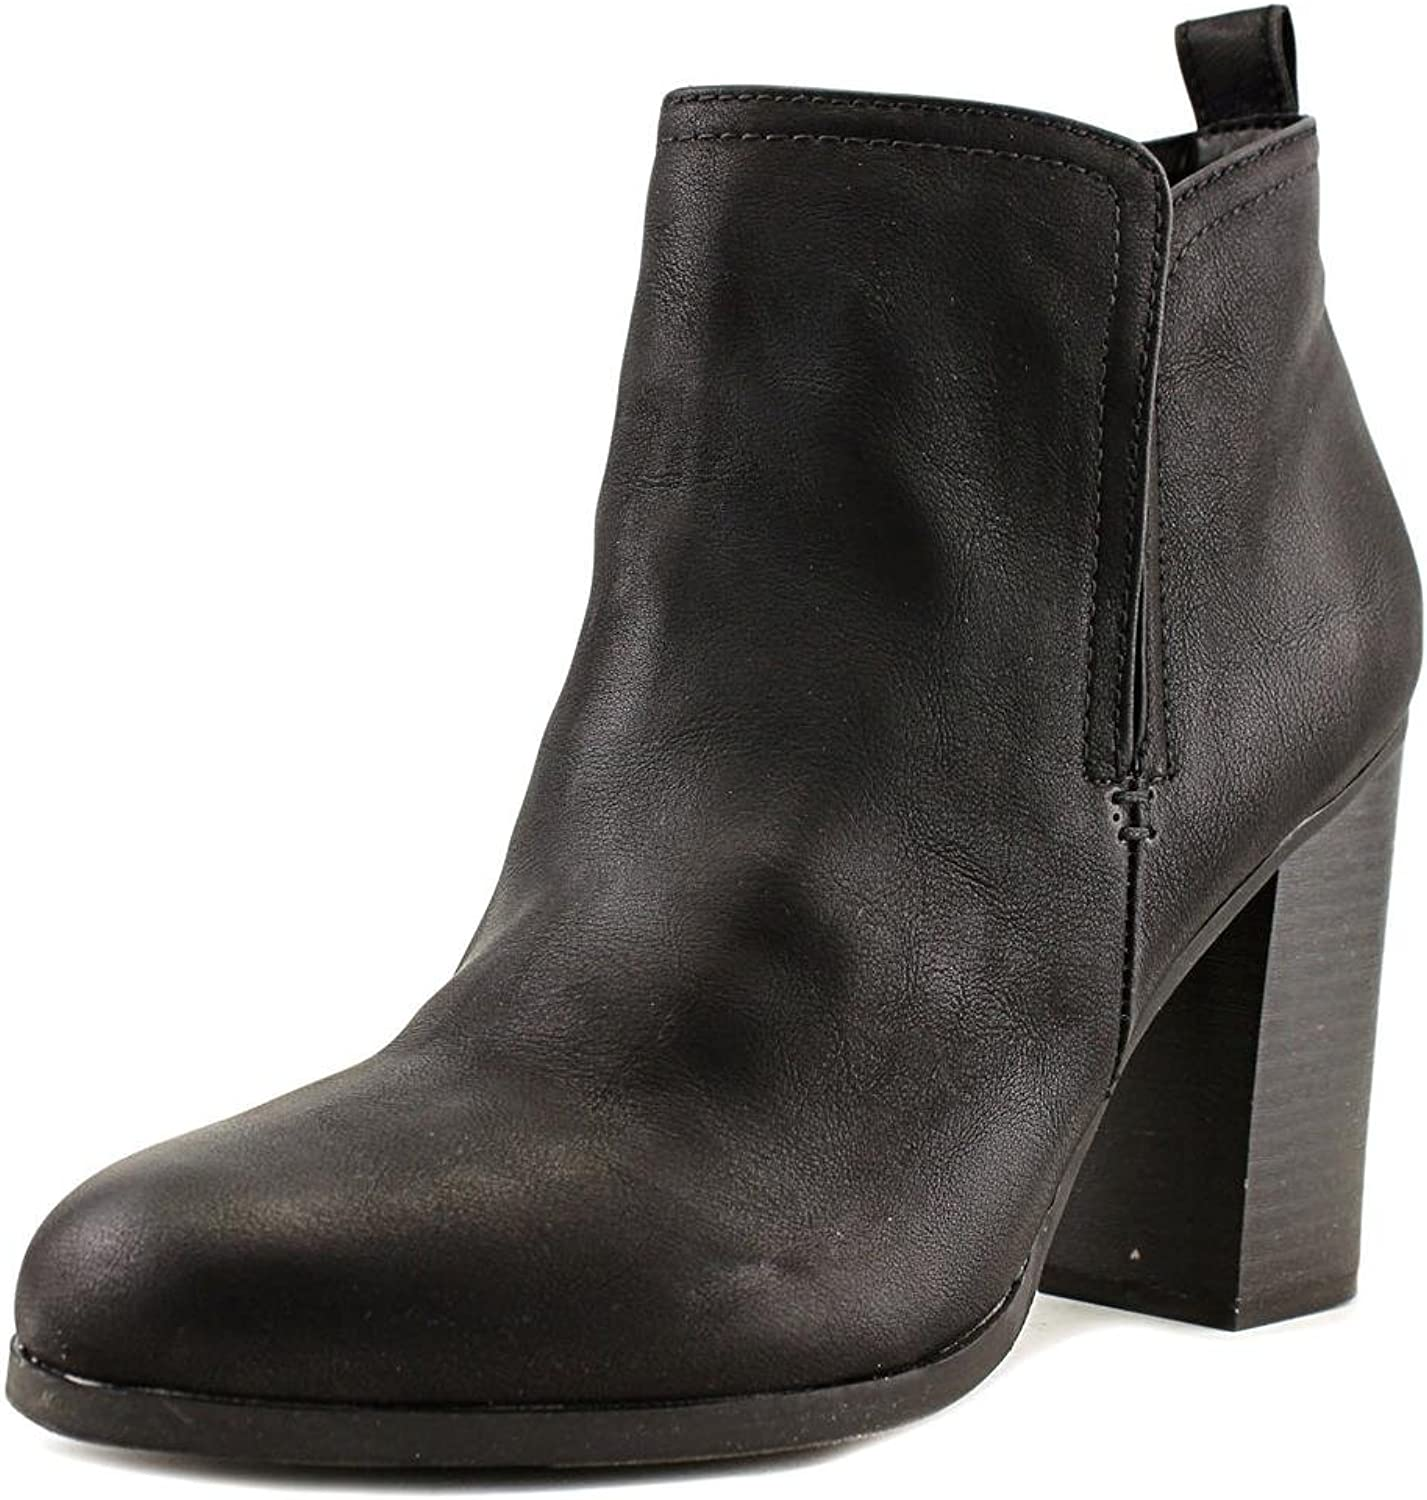 American Rag Womens Seleste Closed Toe Ankle Fashion Boots, Black, Size 11.0